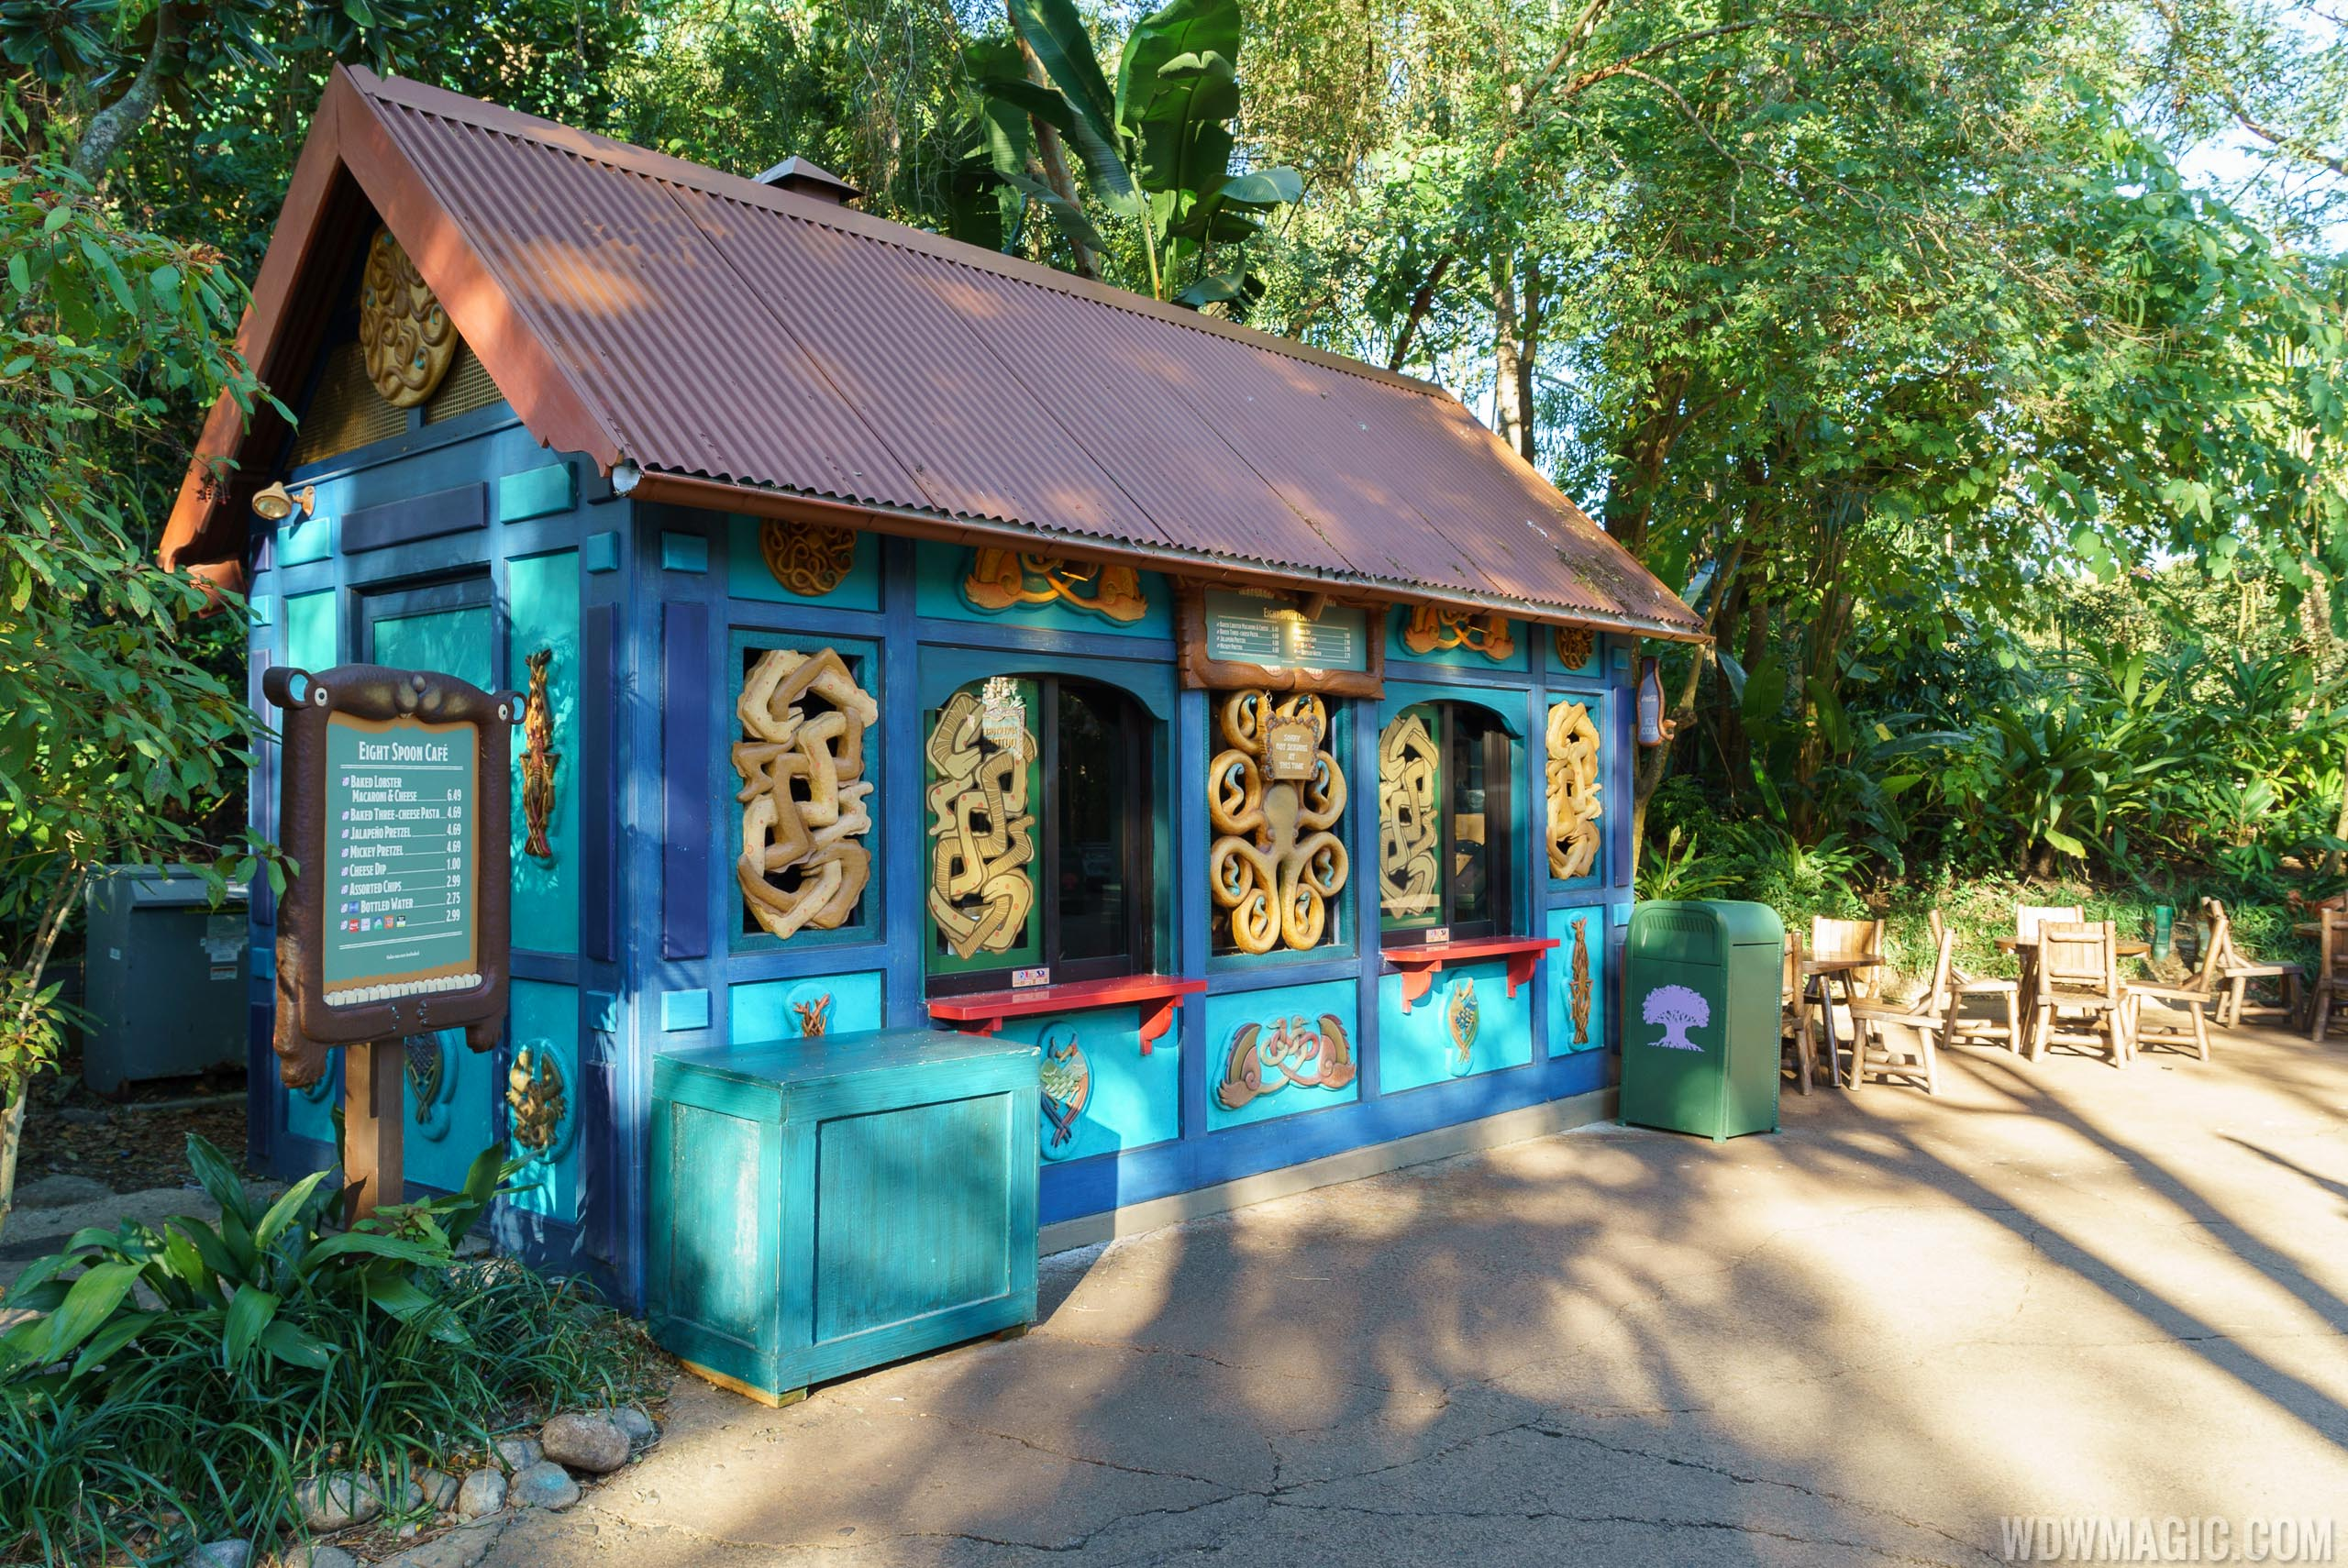 PHOTOS - New names and looks for snack kiosks at Disney's Animal Kingdom